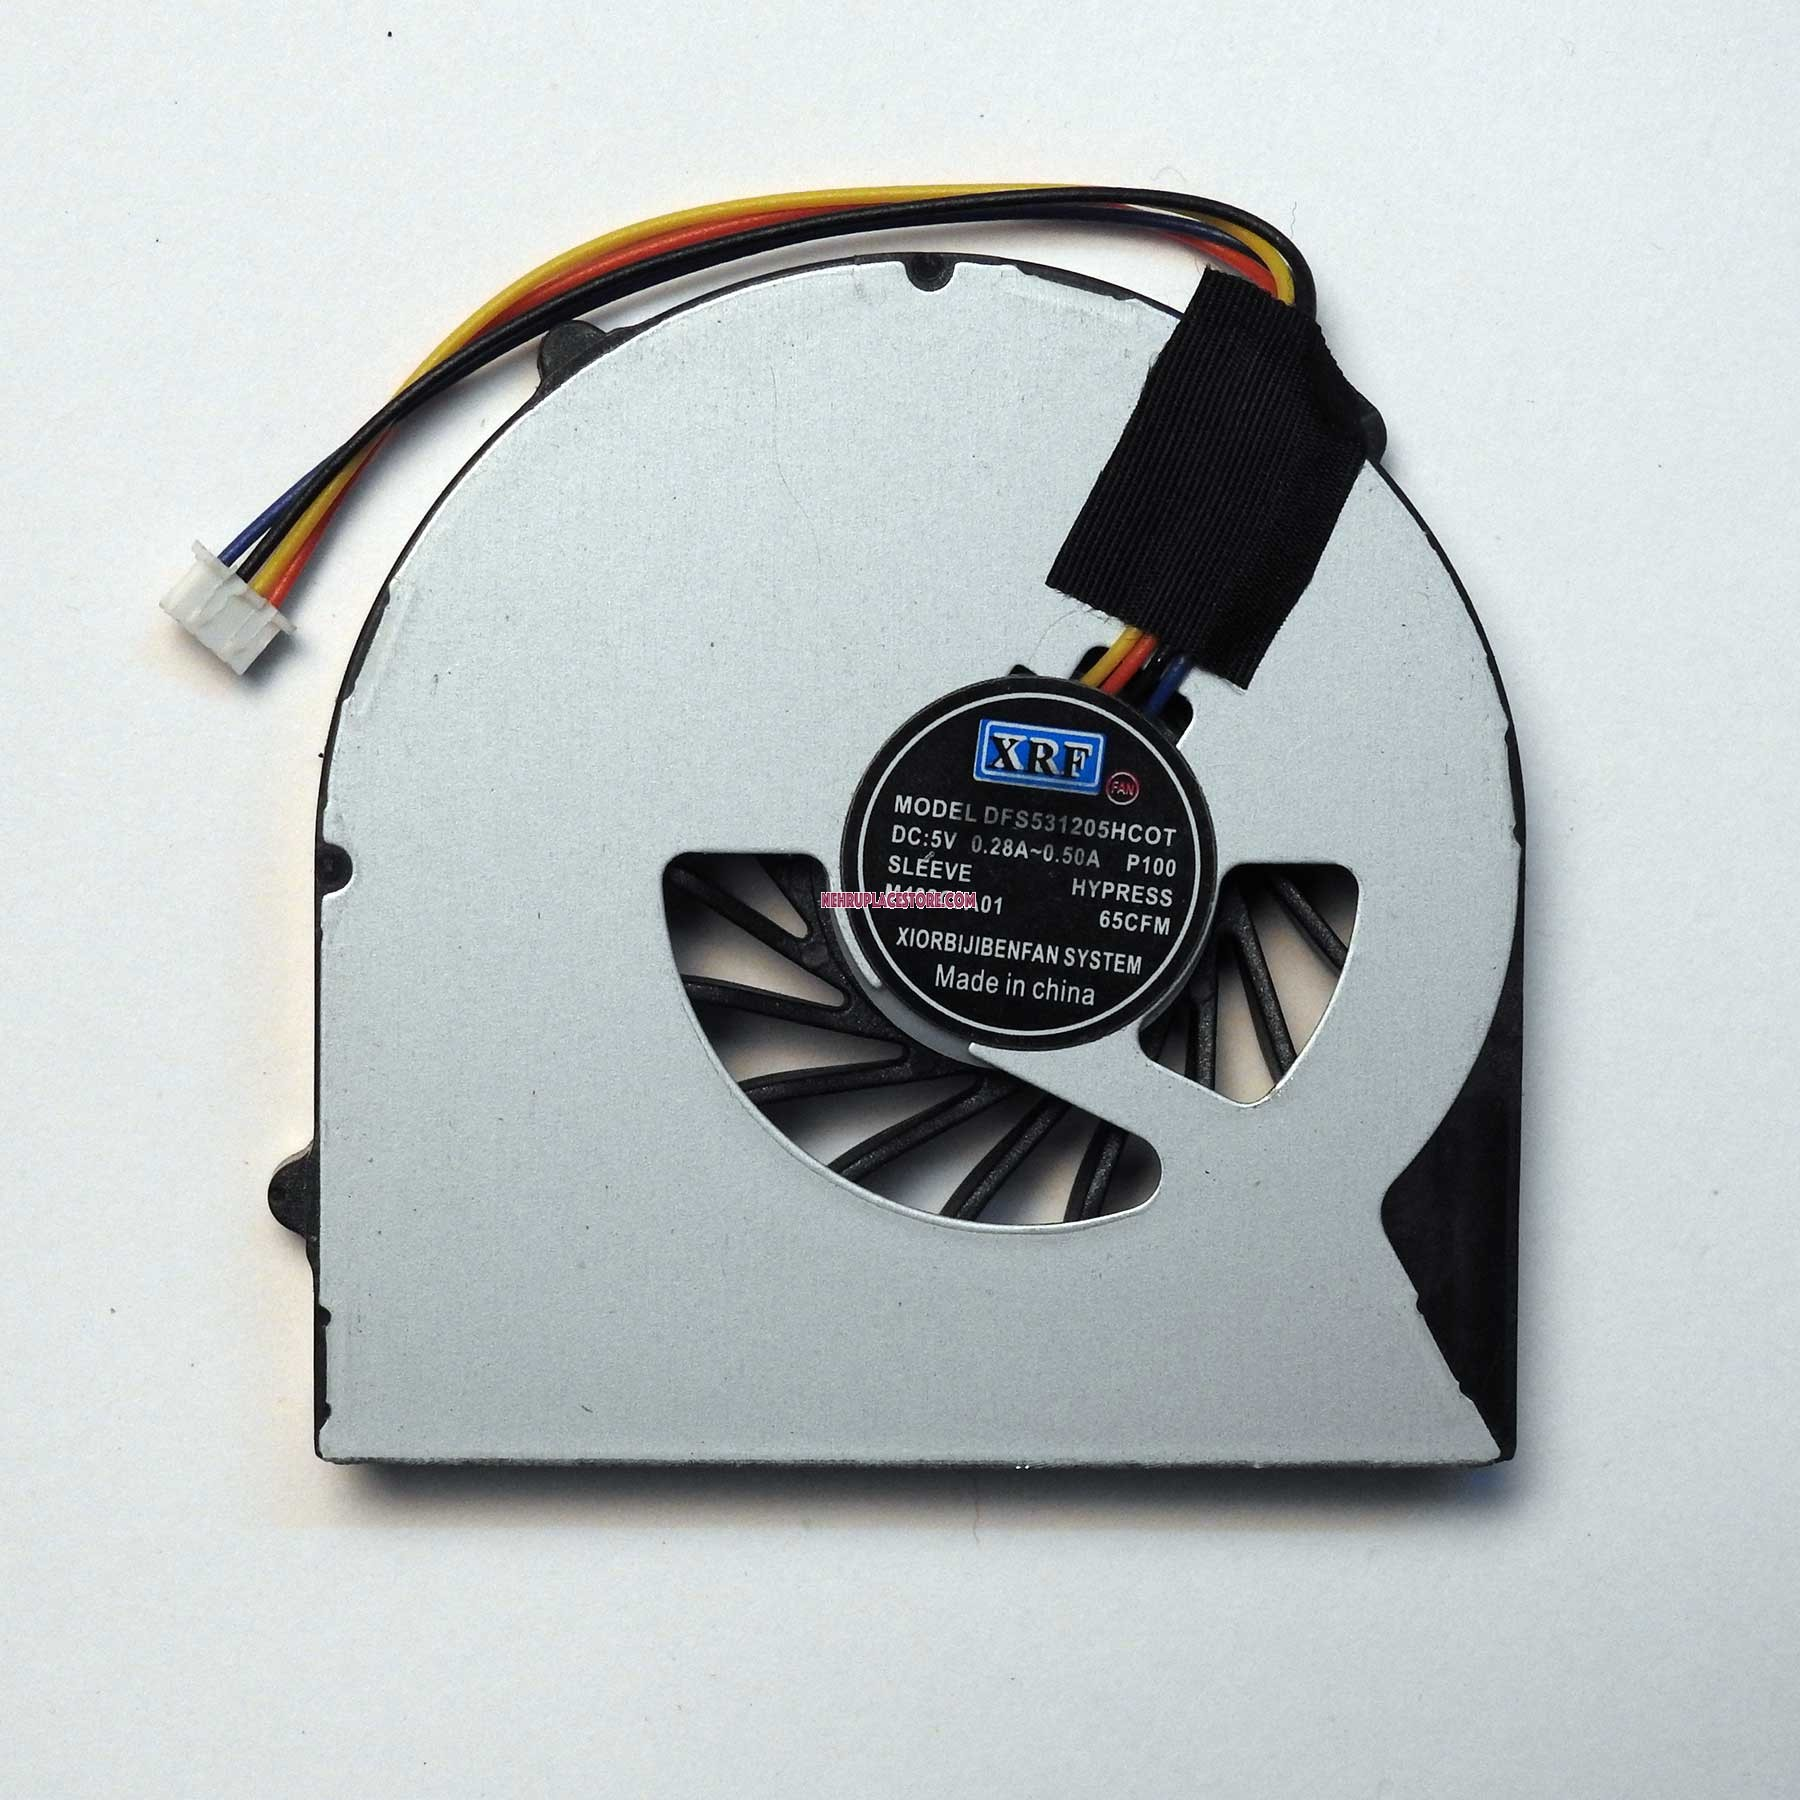 Replacement fan for Lenovo G480 G480A G480M G485 G580 G585 Series